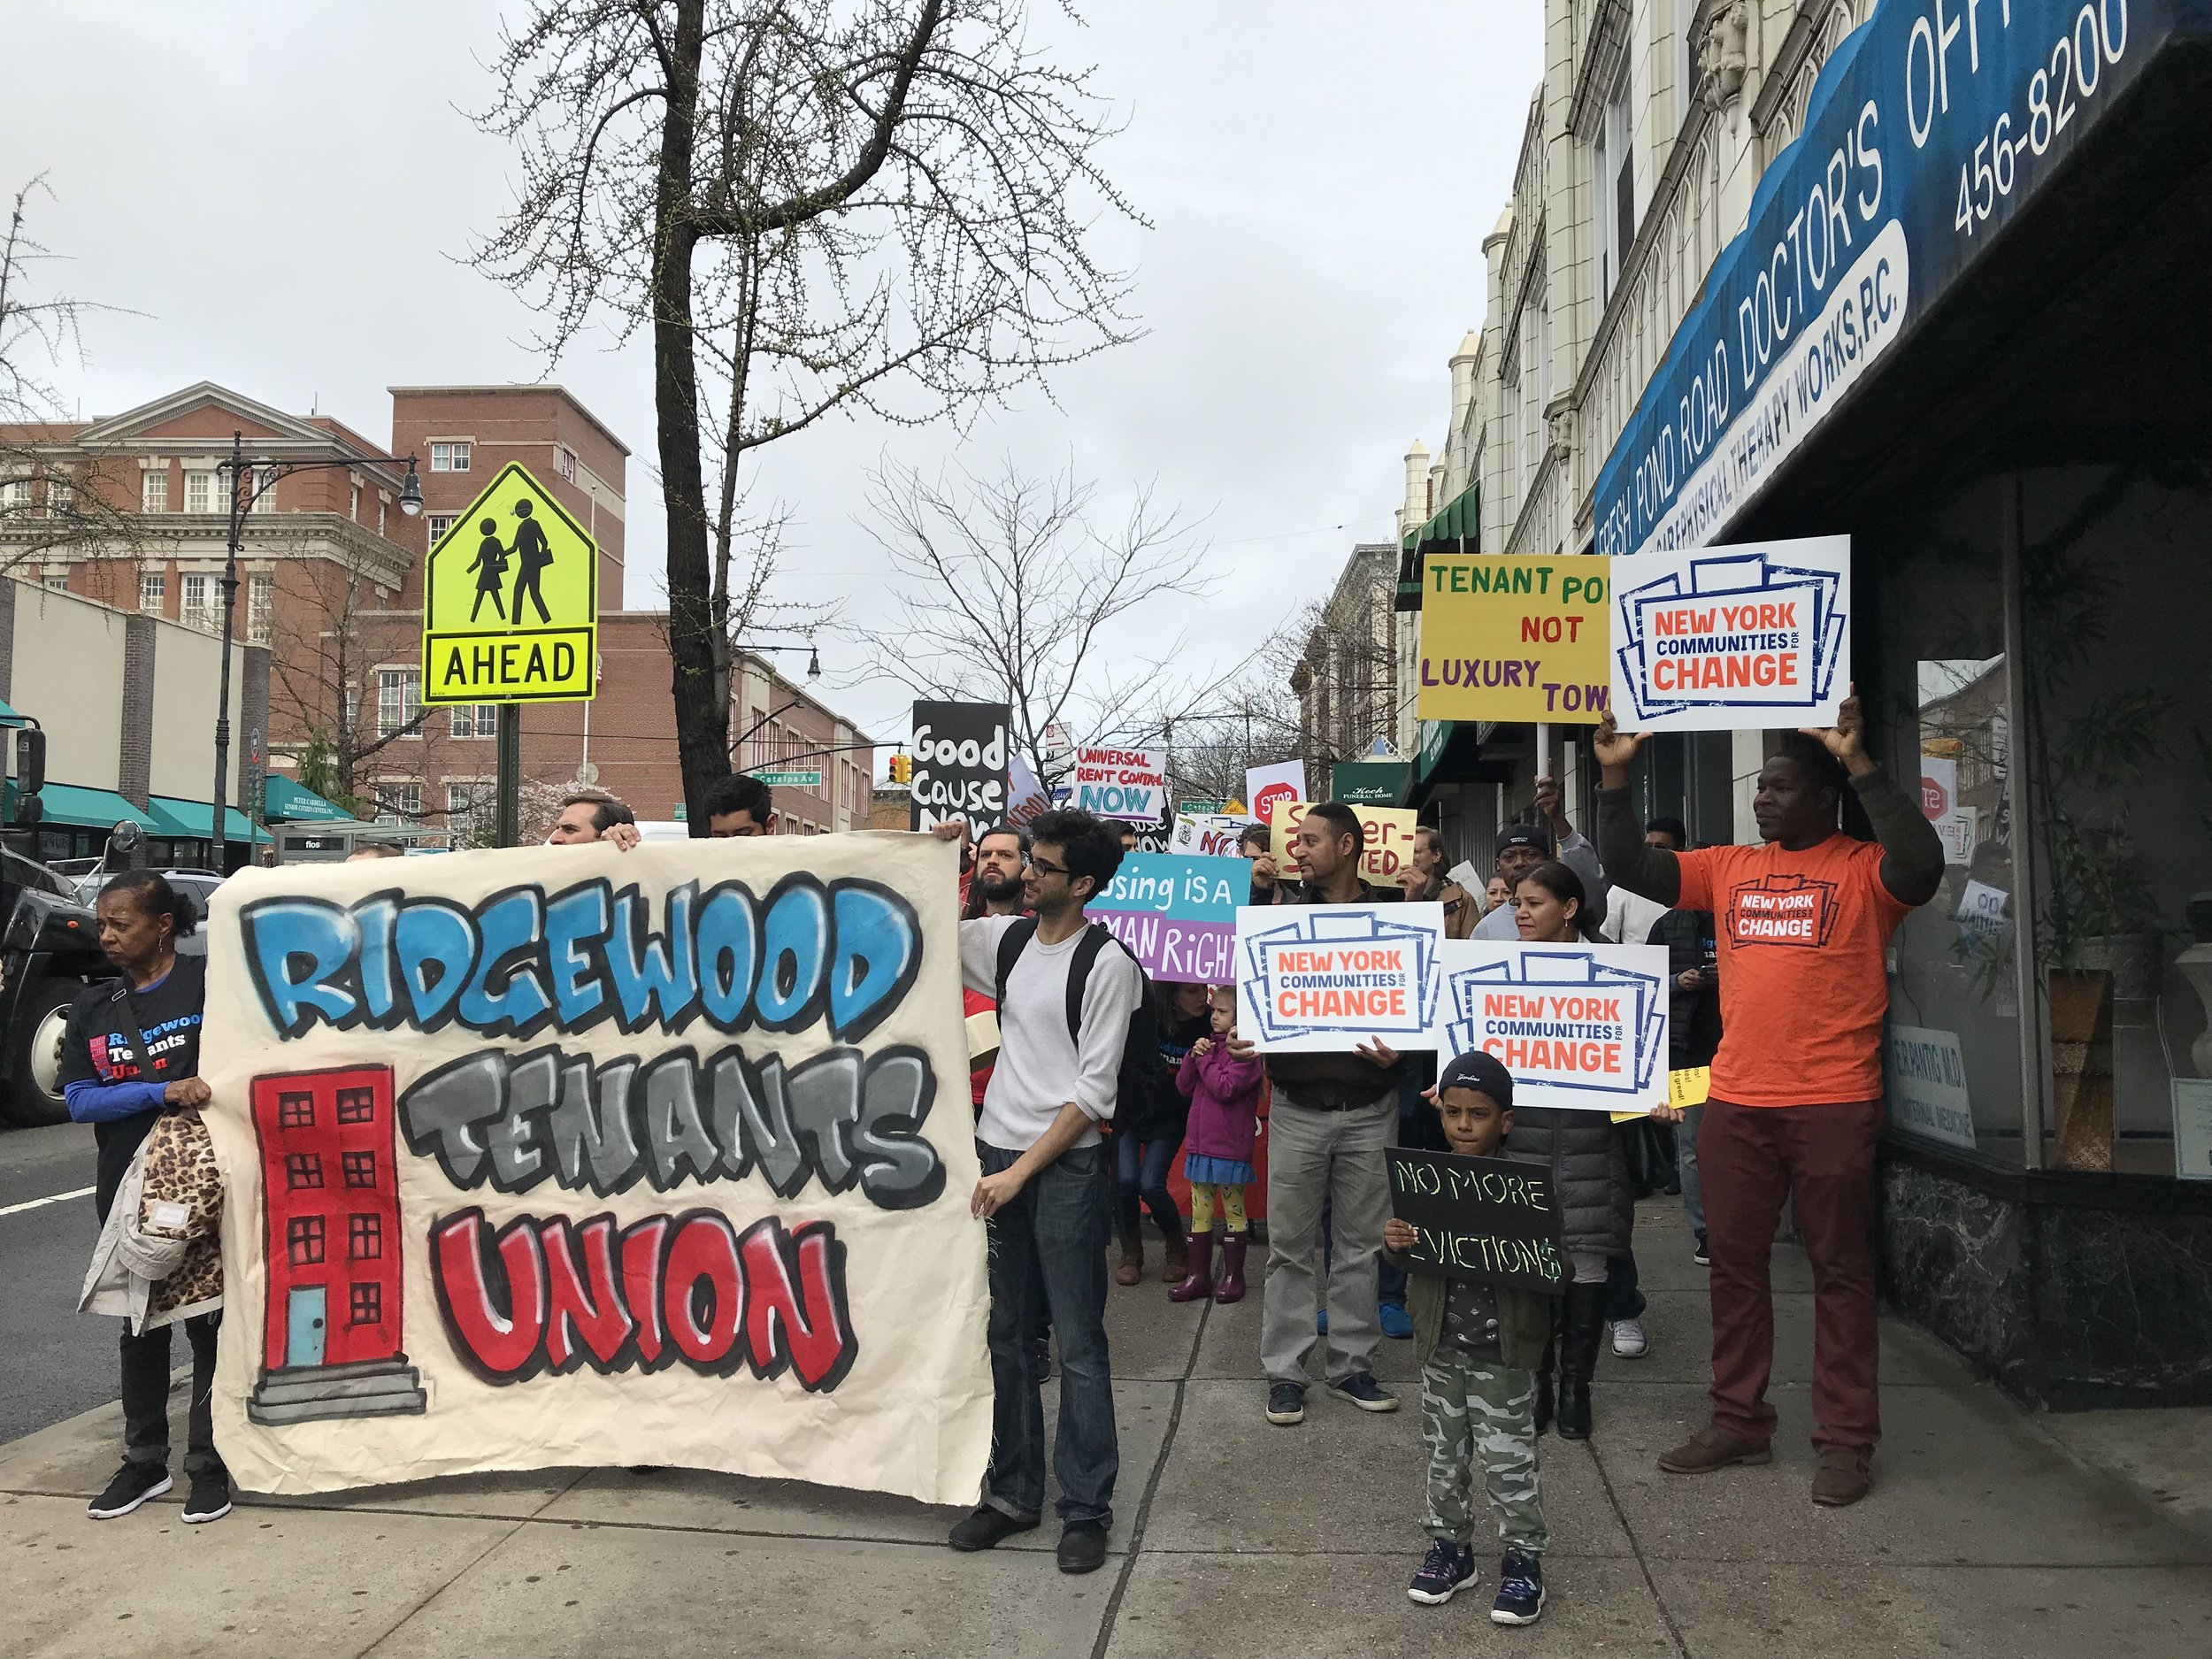 Ridgewood Tenants Union members demonstrate for tenant protections in April. Eagle photo by David Brand.